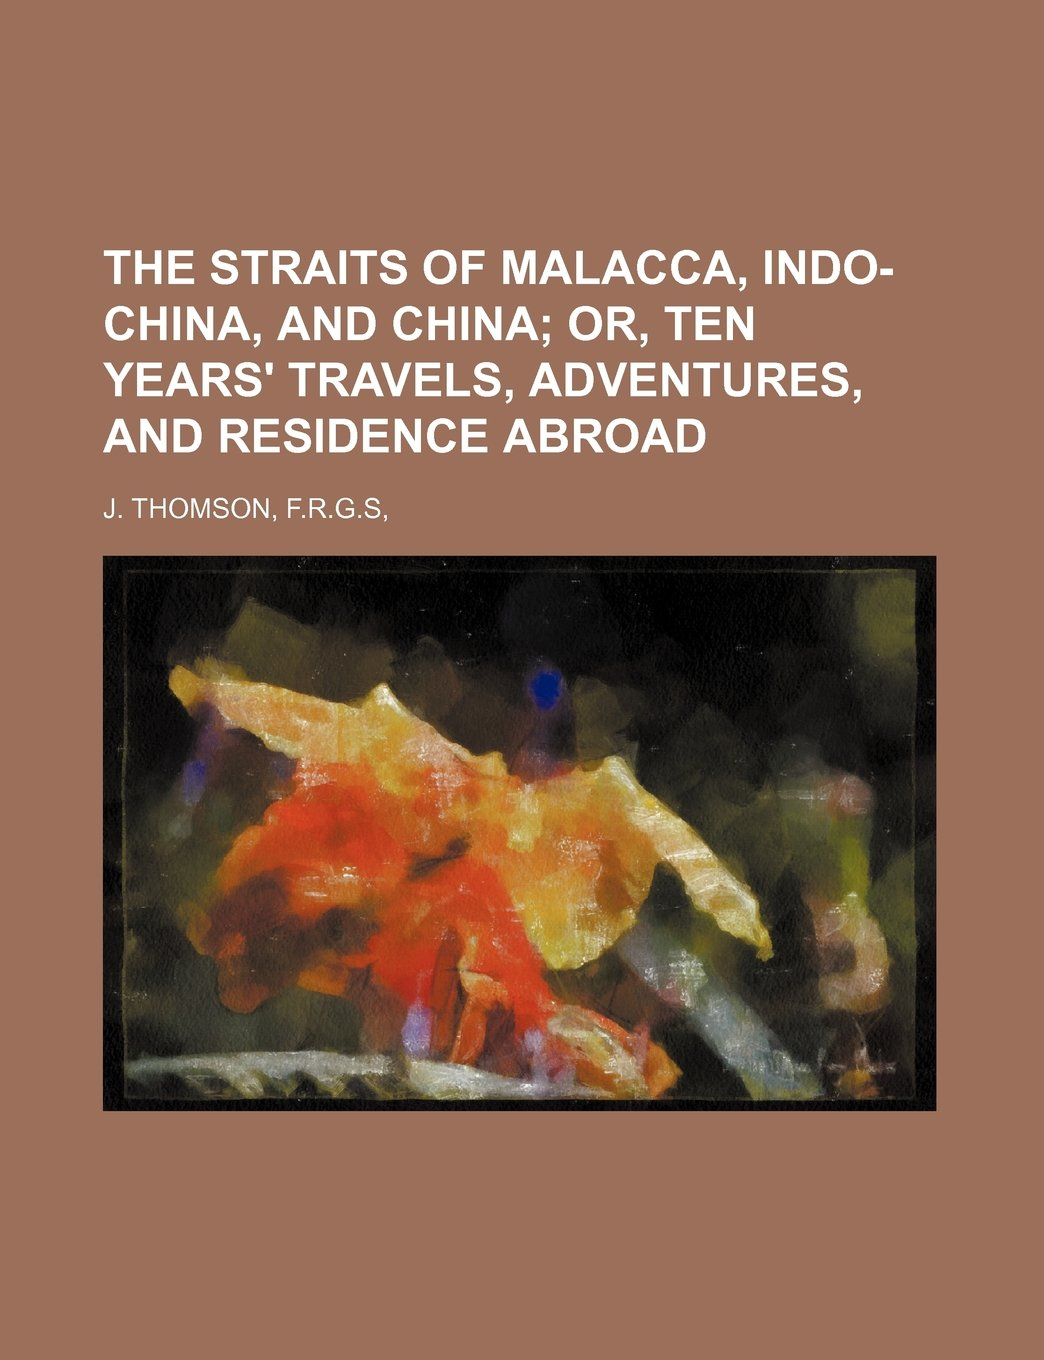 Read Online THE STRAITS OF MALACCA, INDO-CHINA, AND CHINA;  OR, TEN YEARS' TRAVELS, ADVENTURES, AND RESIDENCE ABROAD PDF